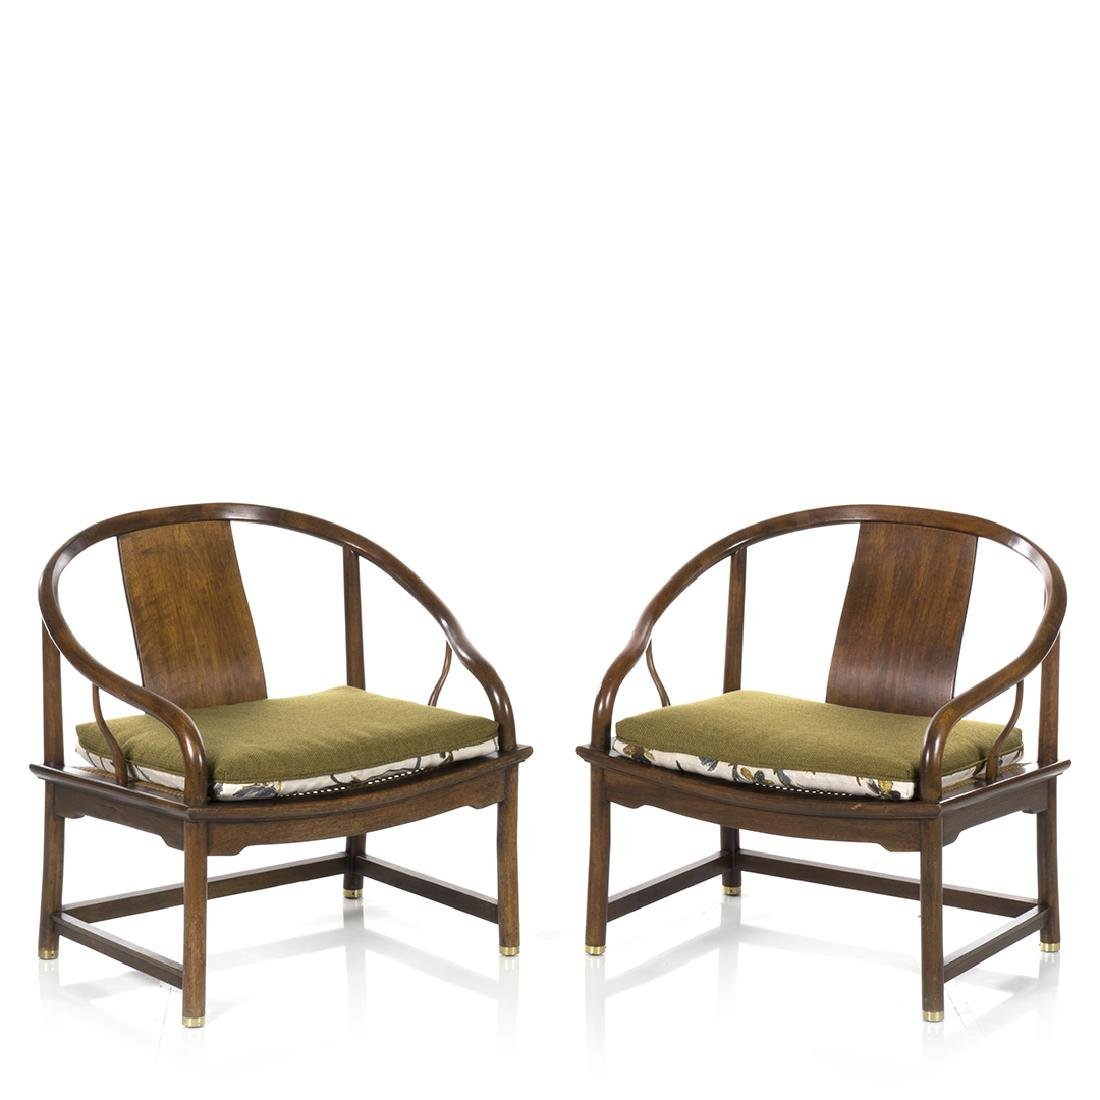 Michael Taylor Far East Lounge Chairs (2) - 2